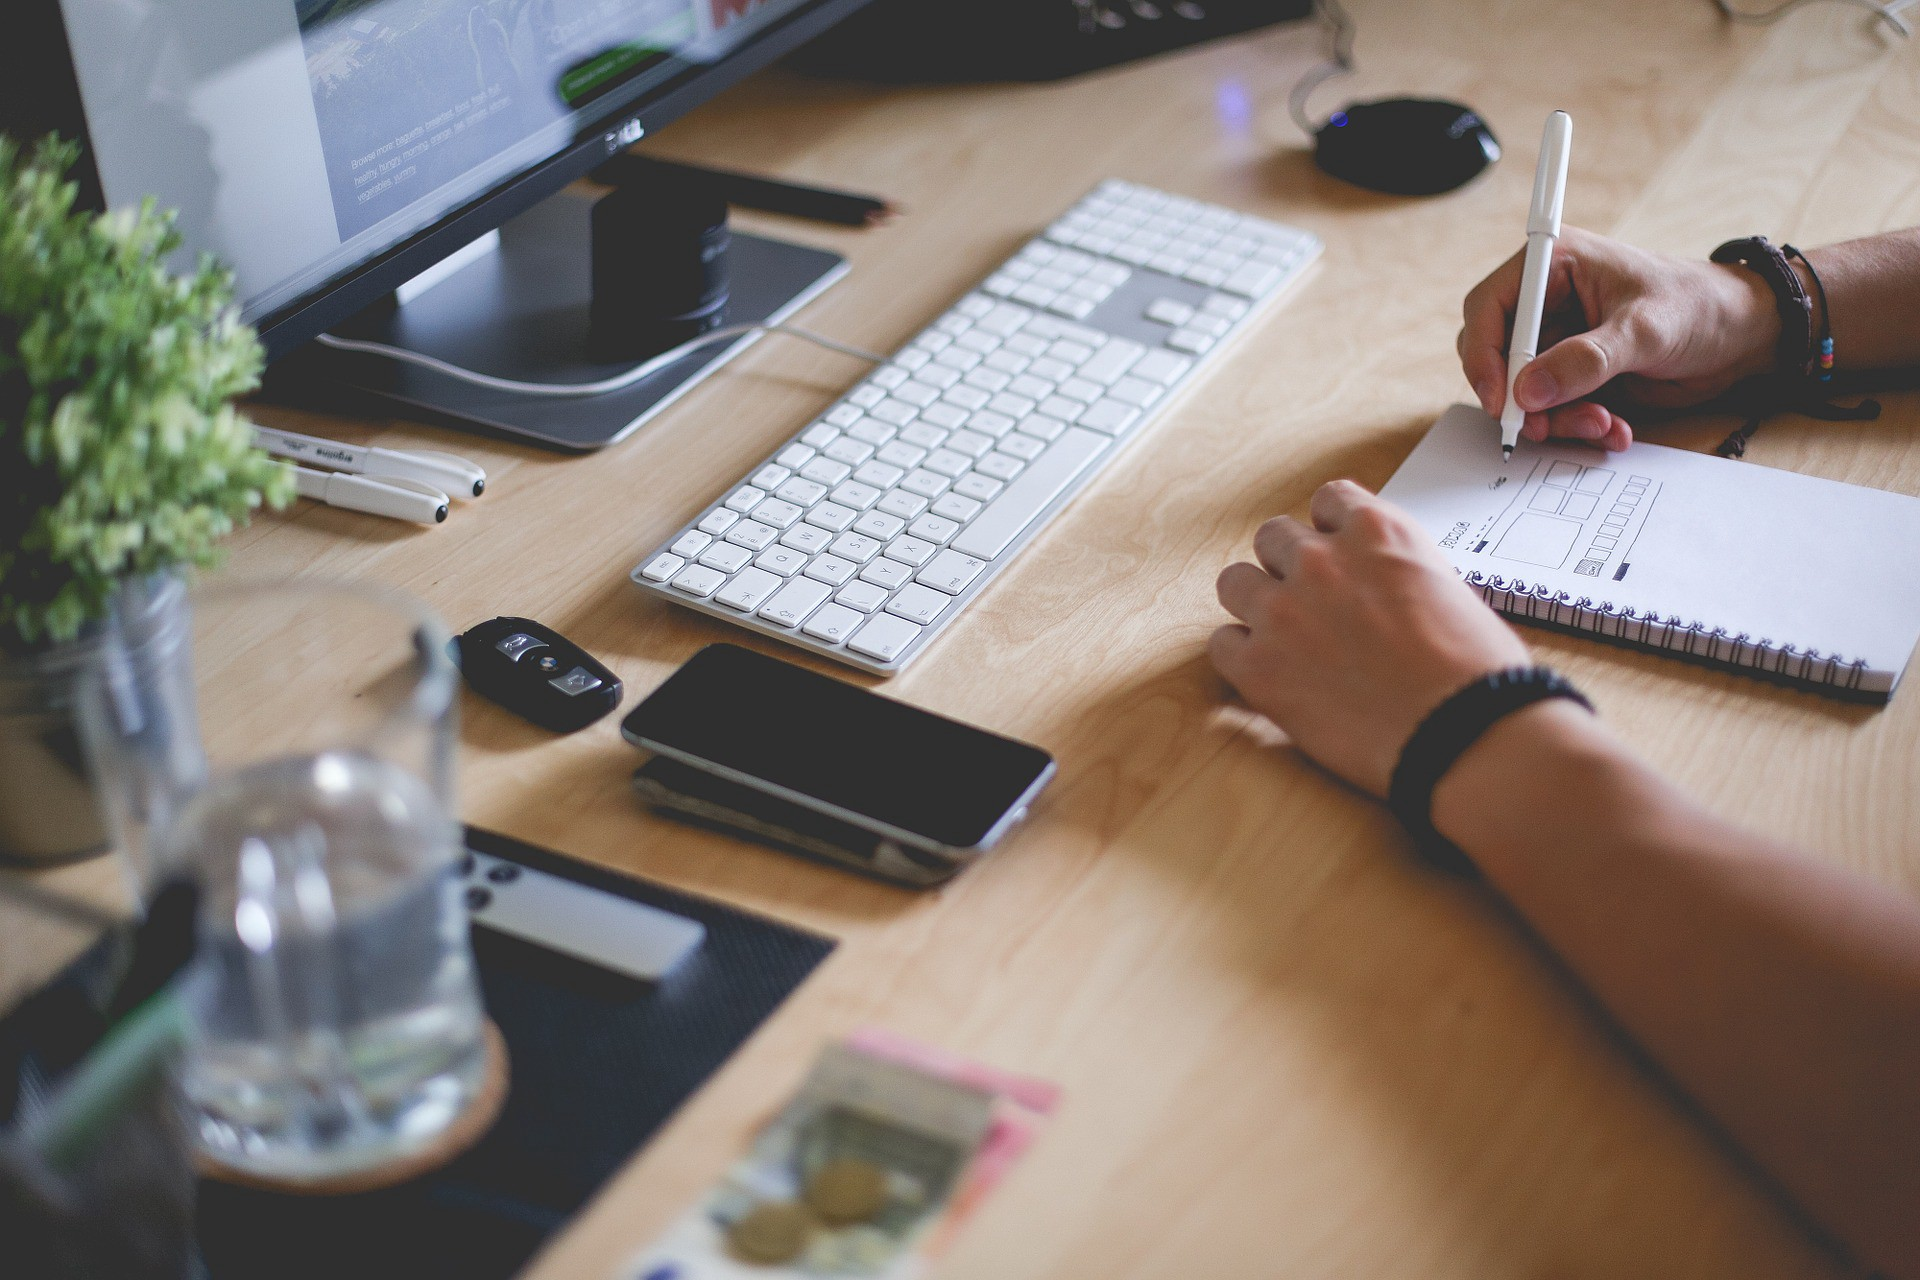 7 Tools That Will Help You Do More Productive Design Work